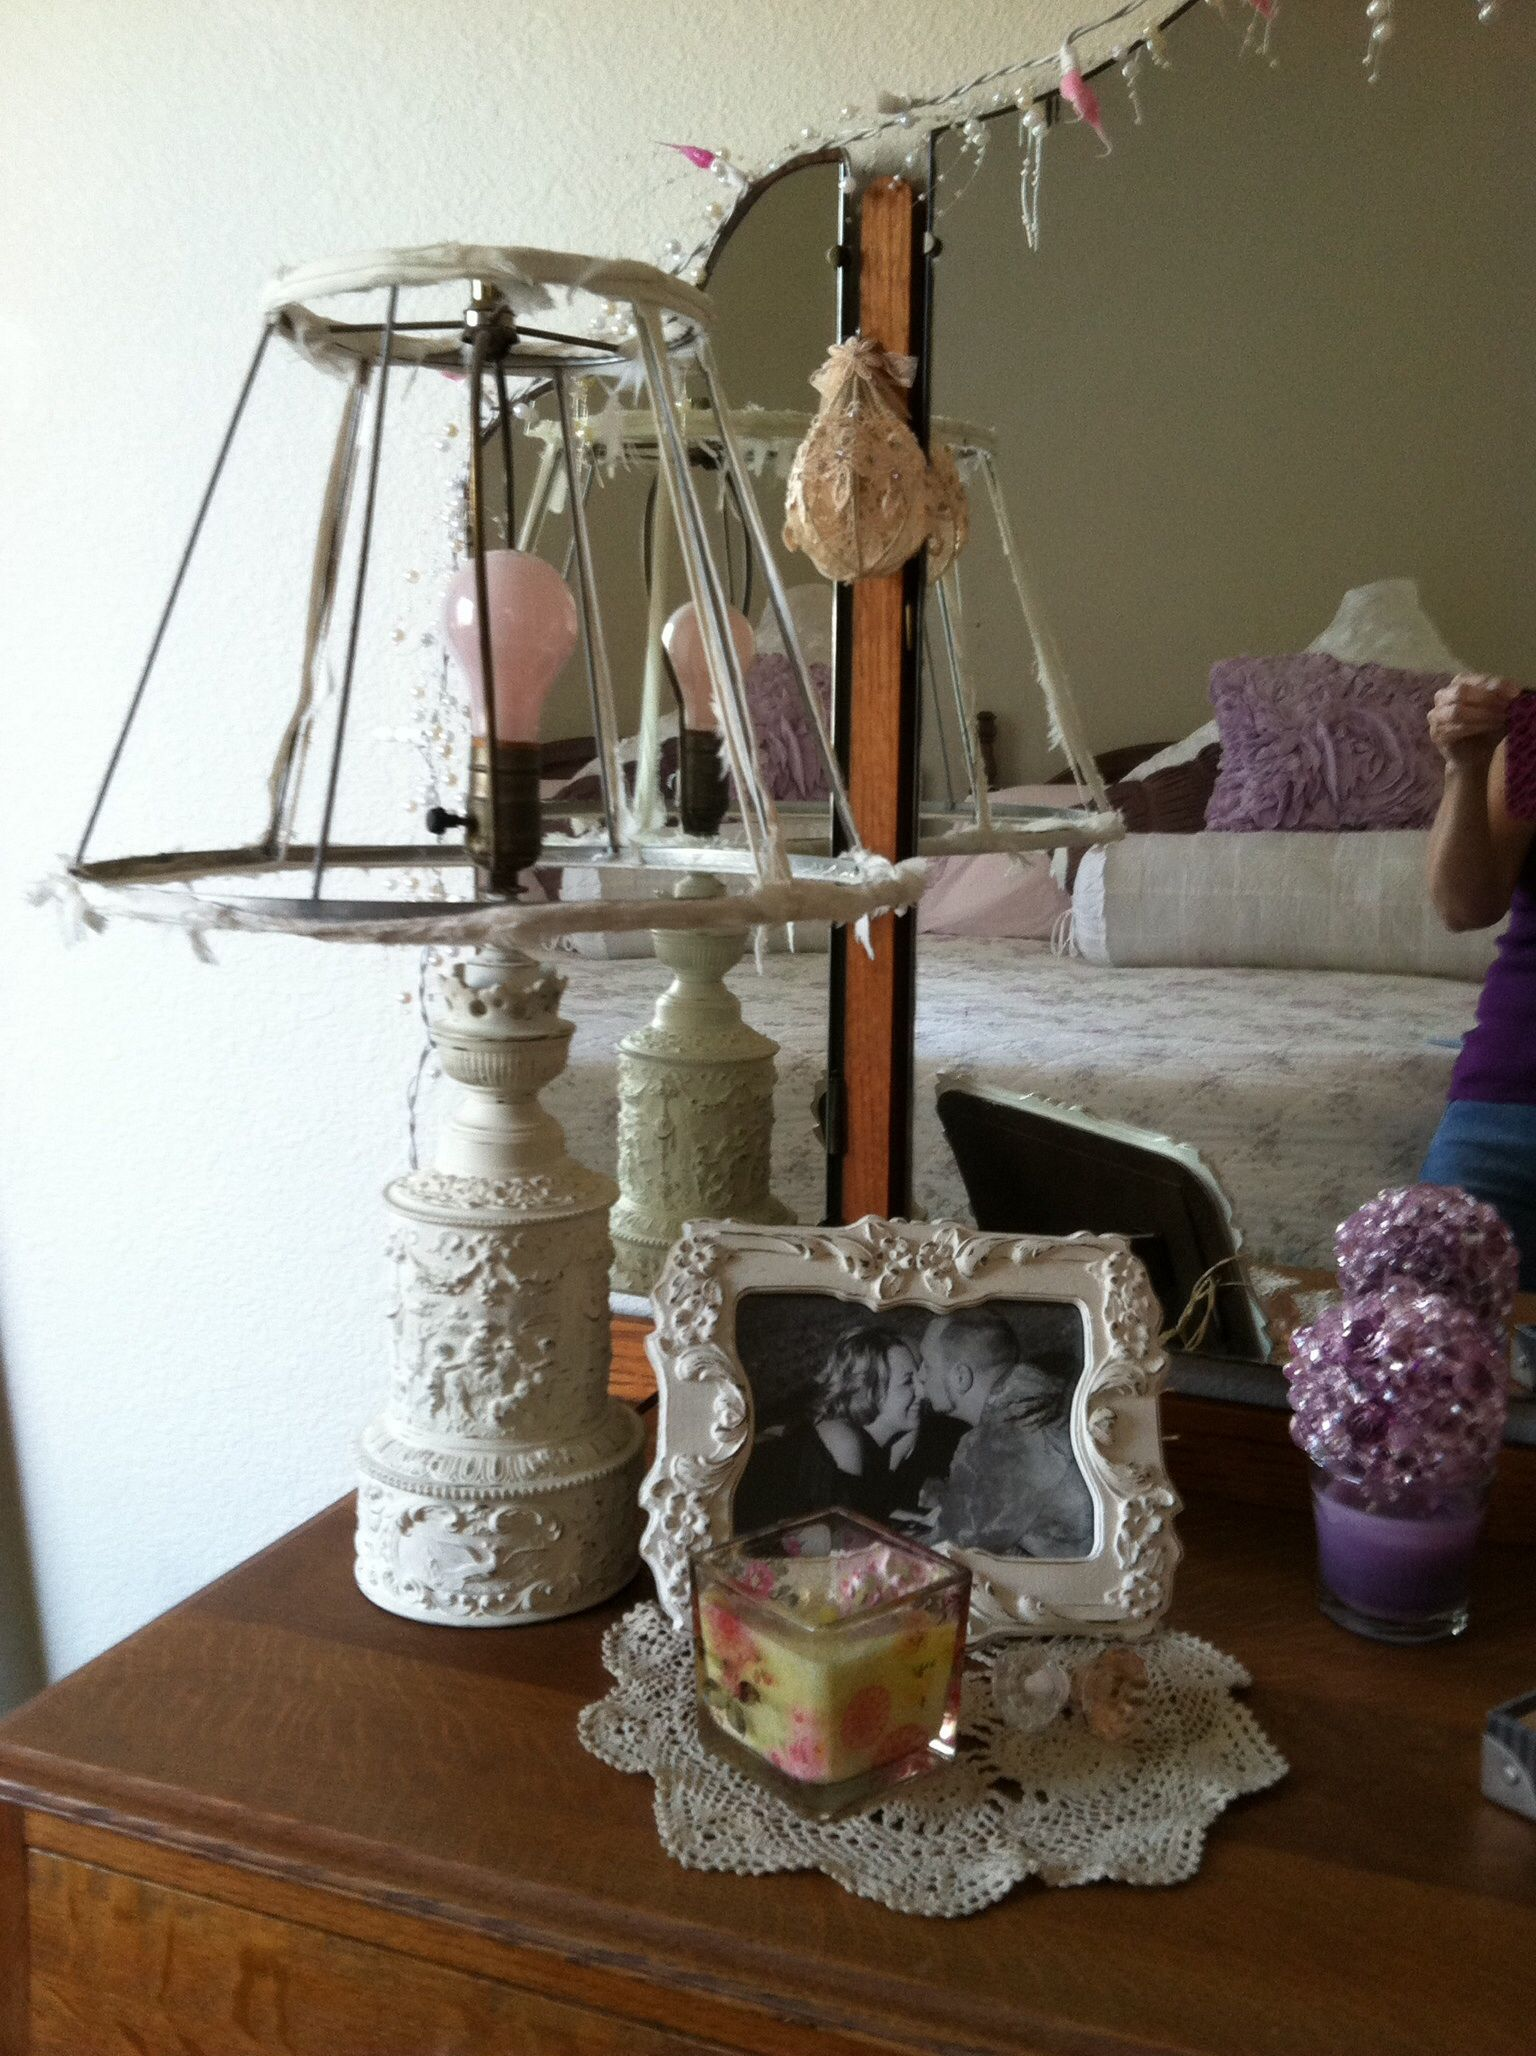 Love Lace Lavender My Shabby Chic Home Decor Pinterest